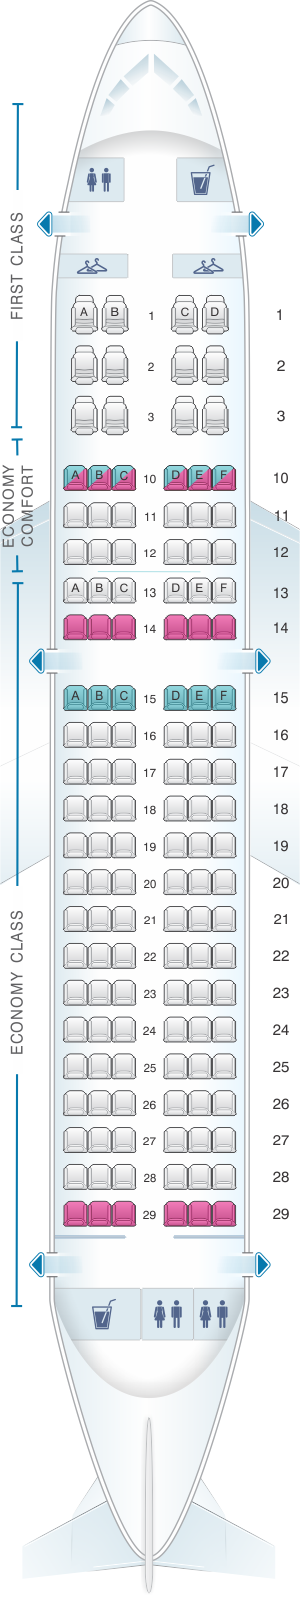 Seat map for Delta Air Lines Airbus A319 (31J)